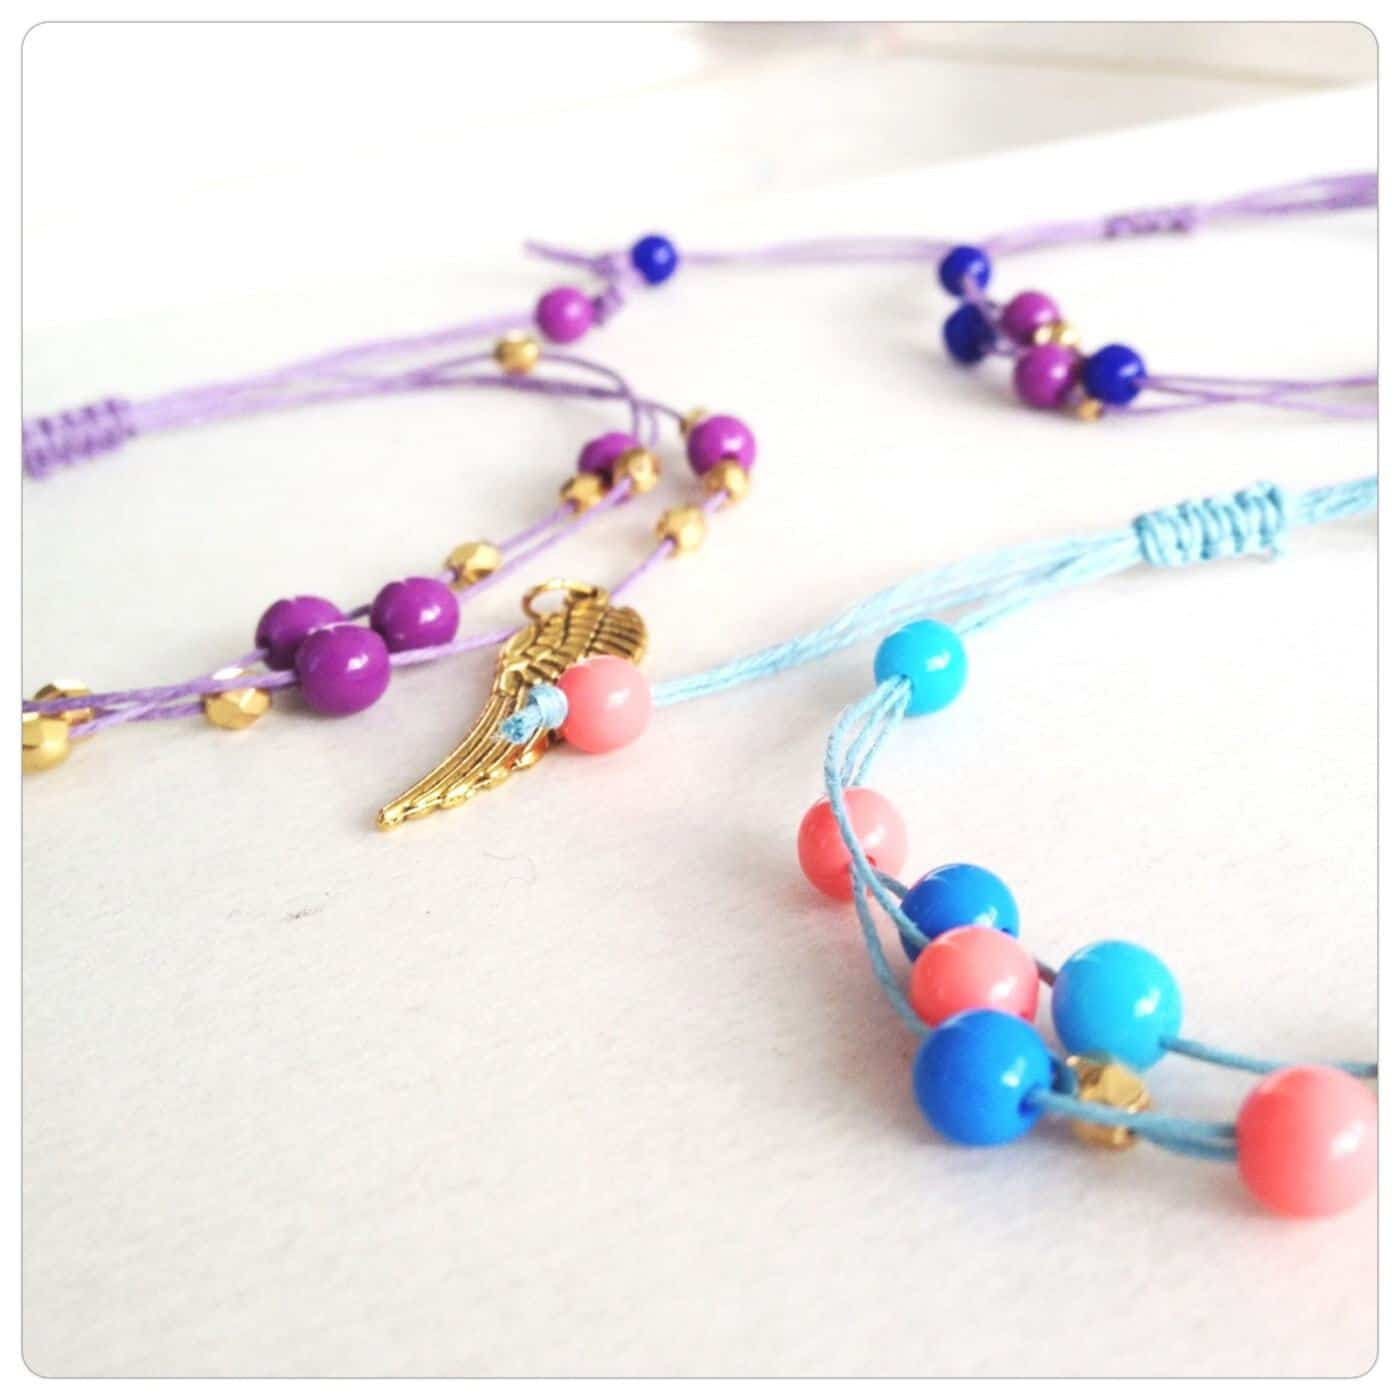 DIY Wish Bracelet Tutorial